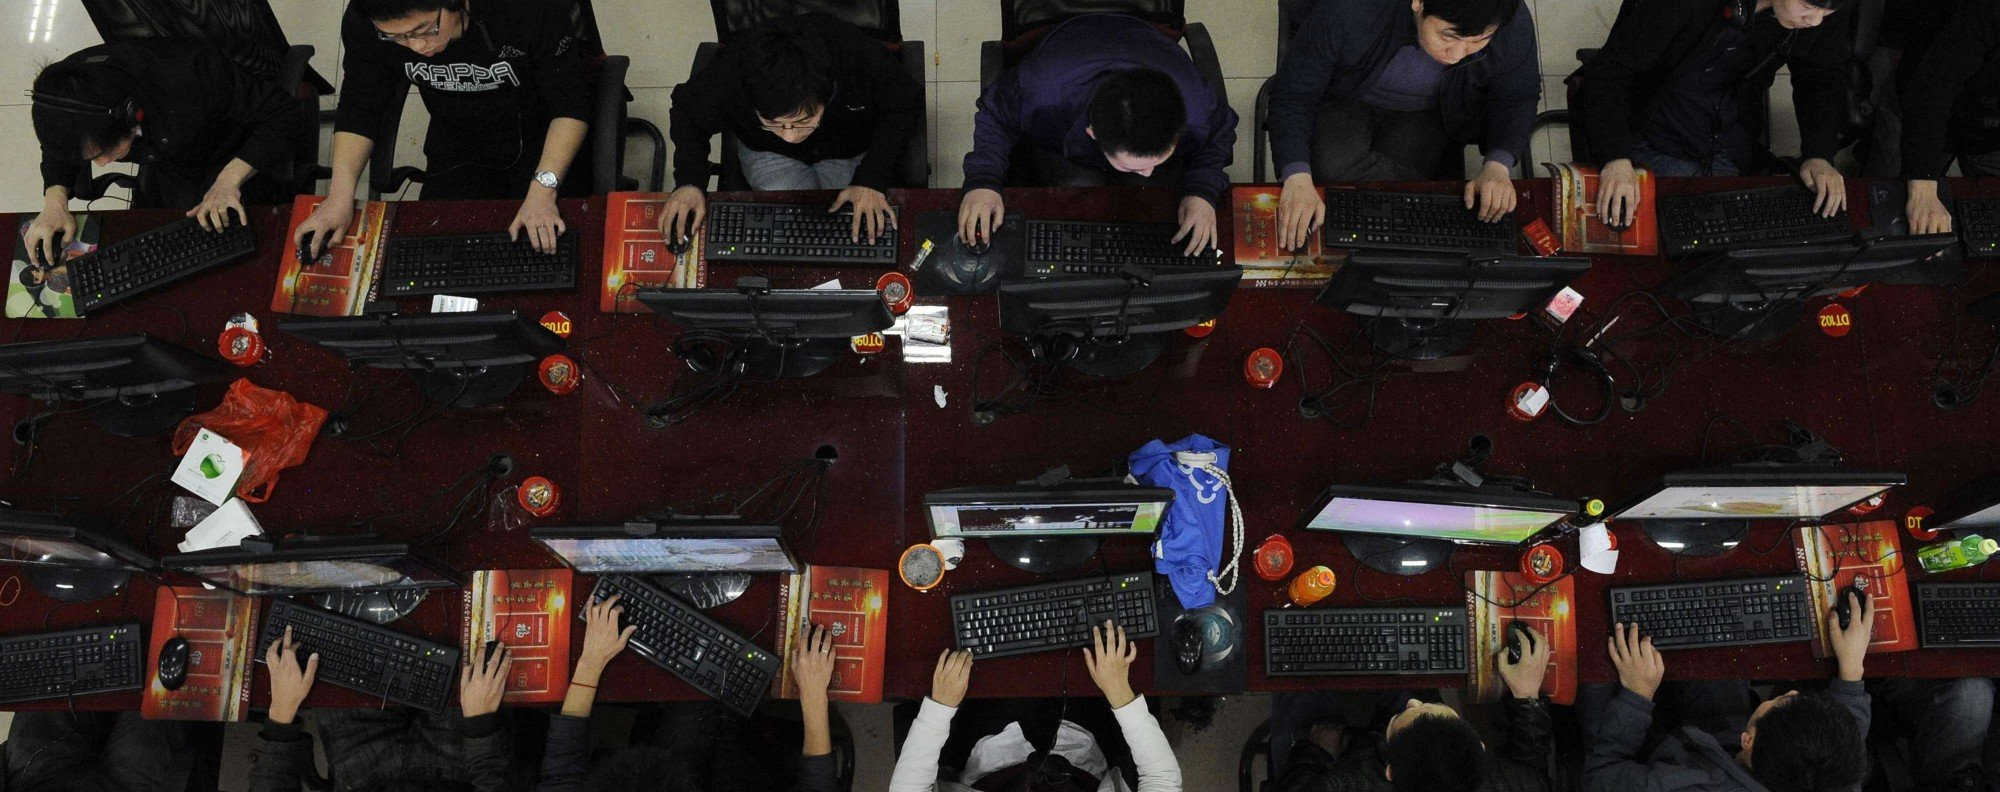 An internet cafe in Taiyuan, Shanxi province. Photo: Reuters